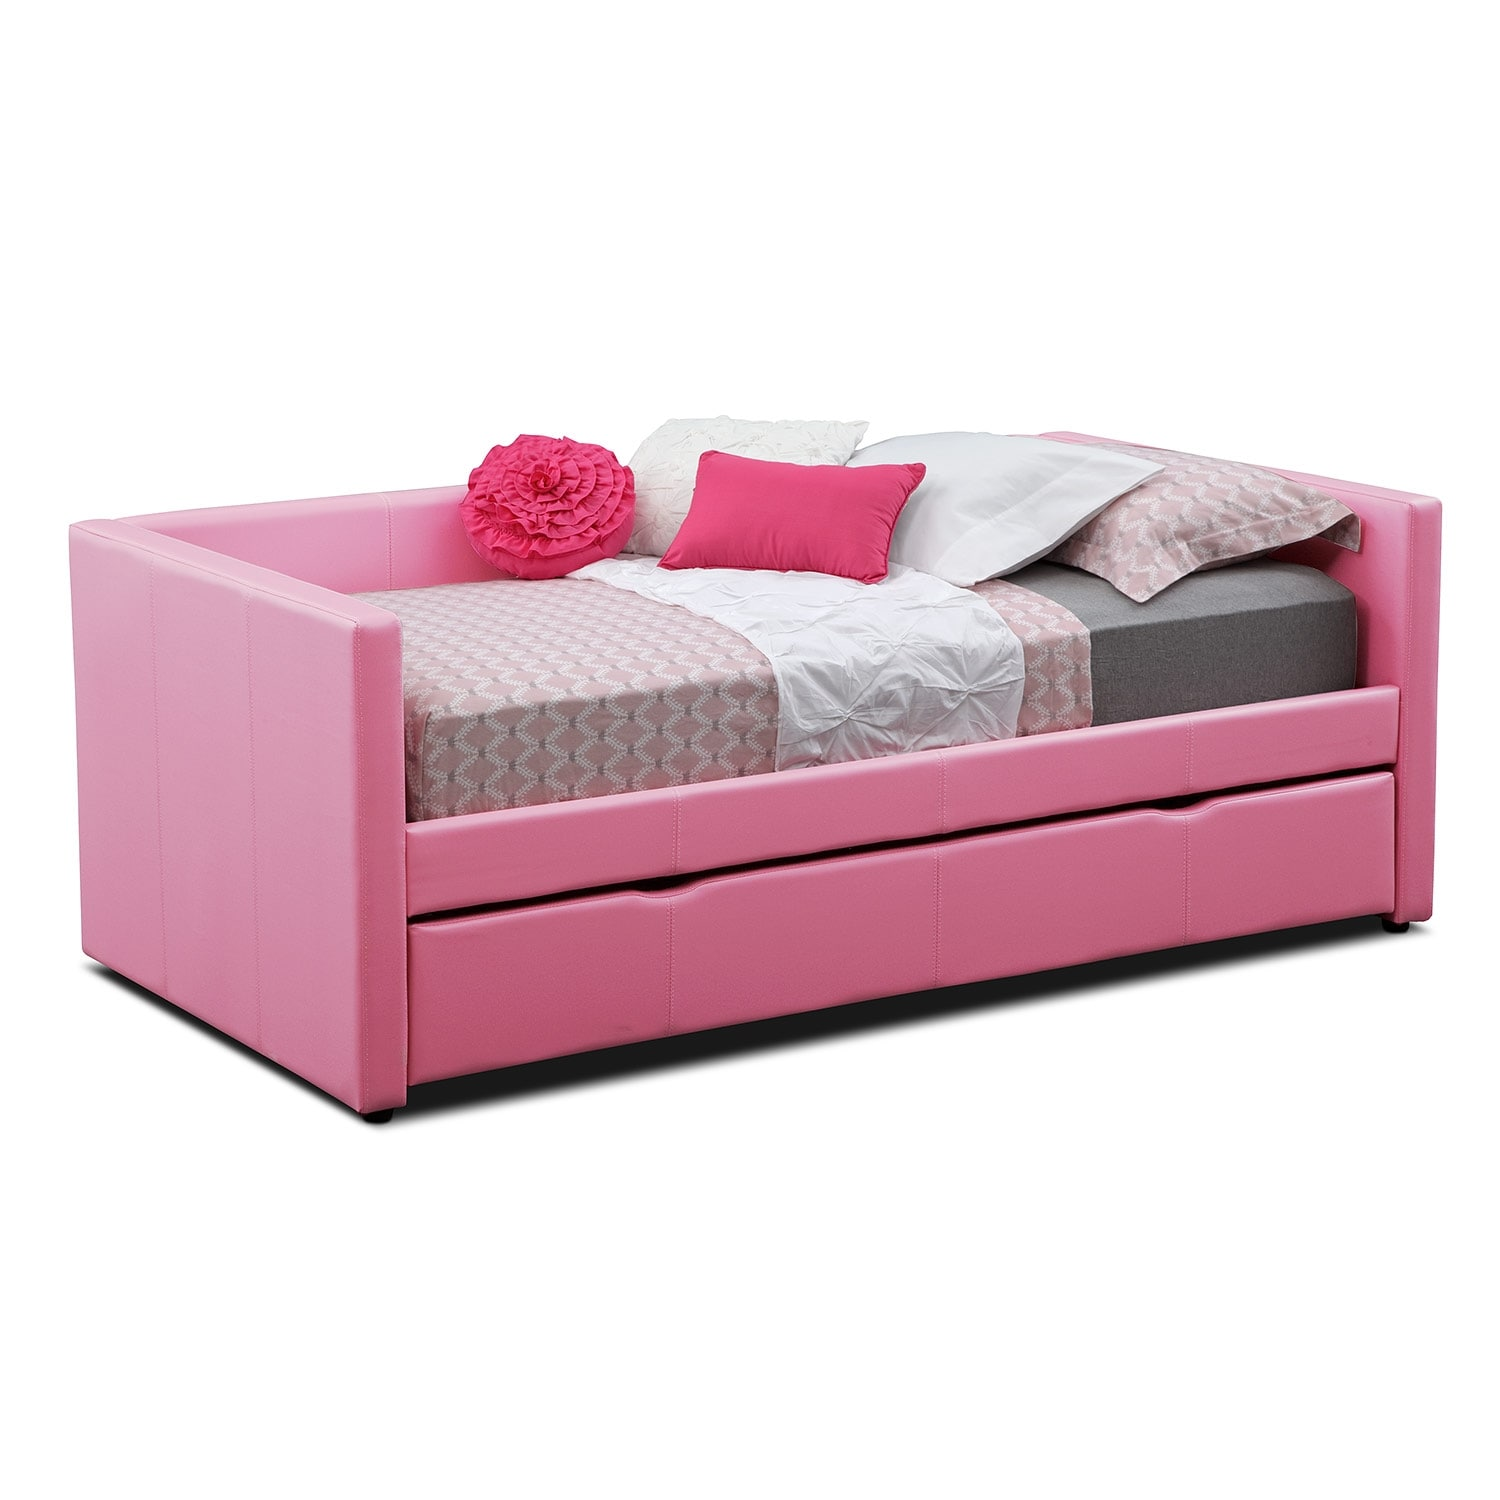 Carey Twin Daybed with Trundle - Pink